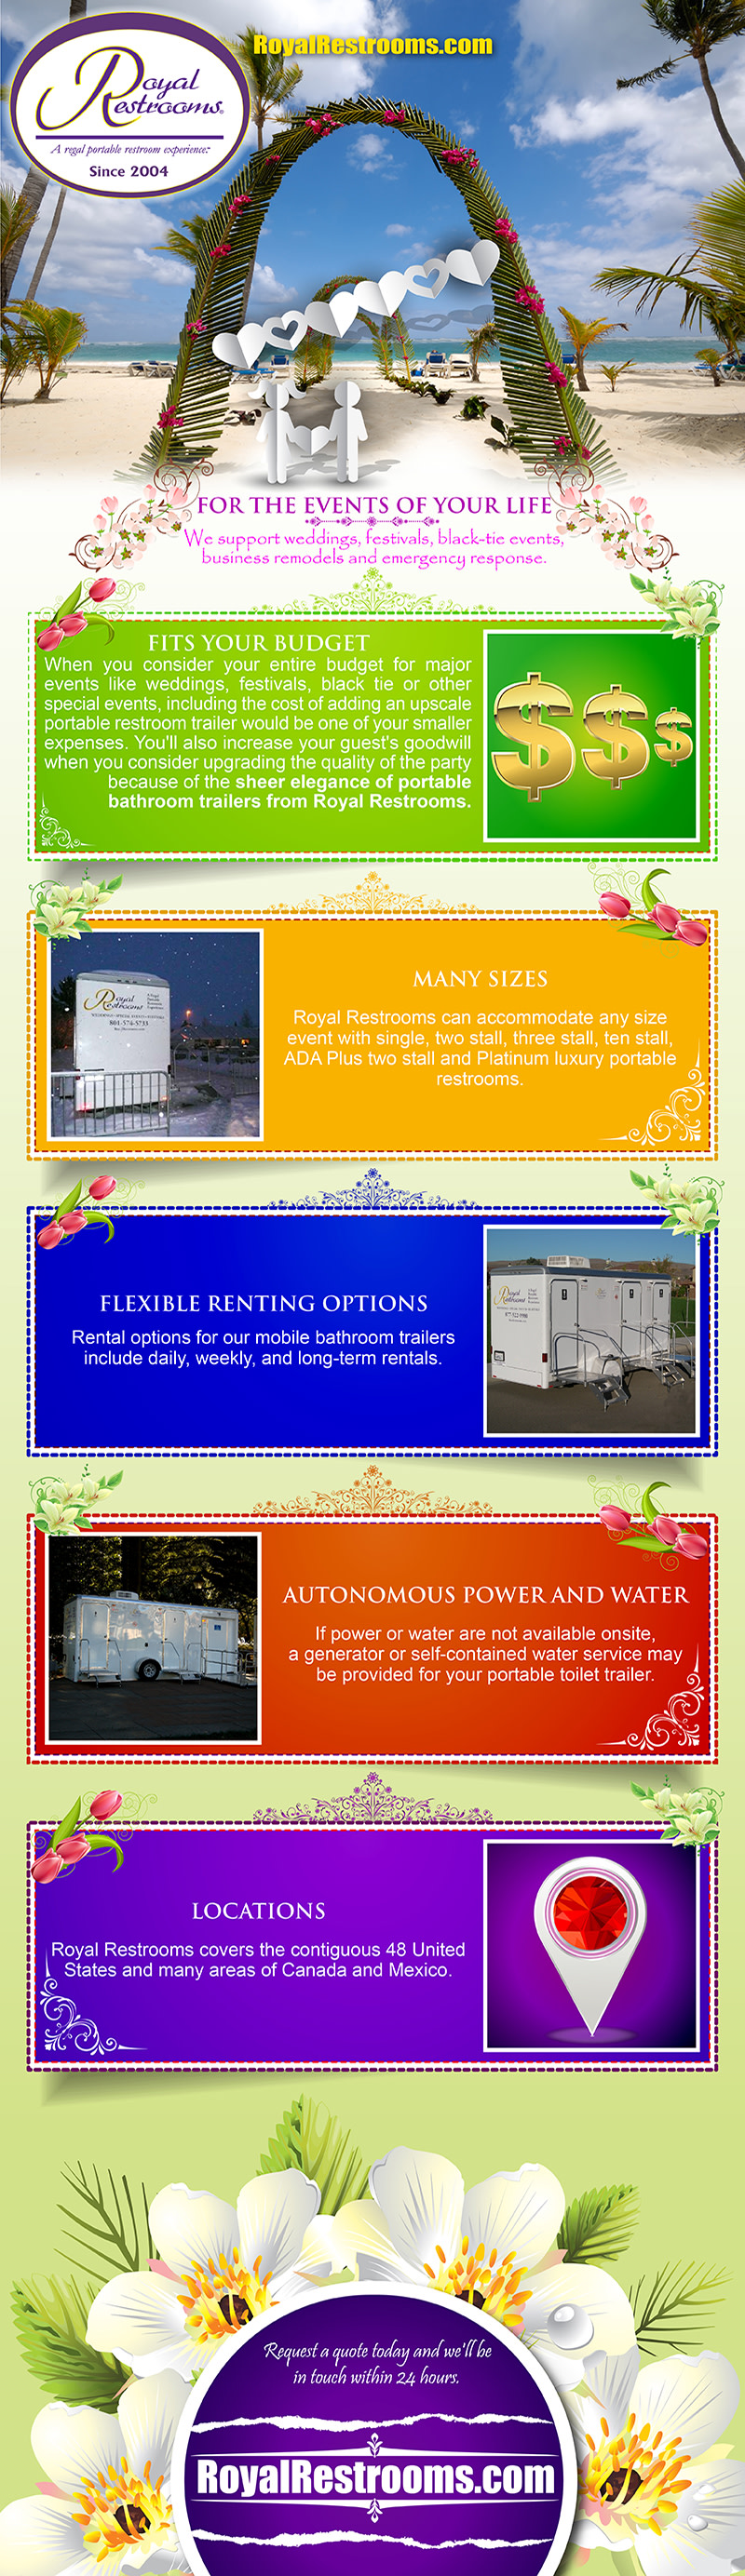 Luxury Portable Restrooms for the Special Events of Your Life [INFOGRAPHIC]